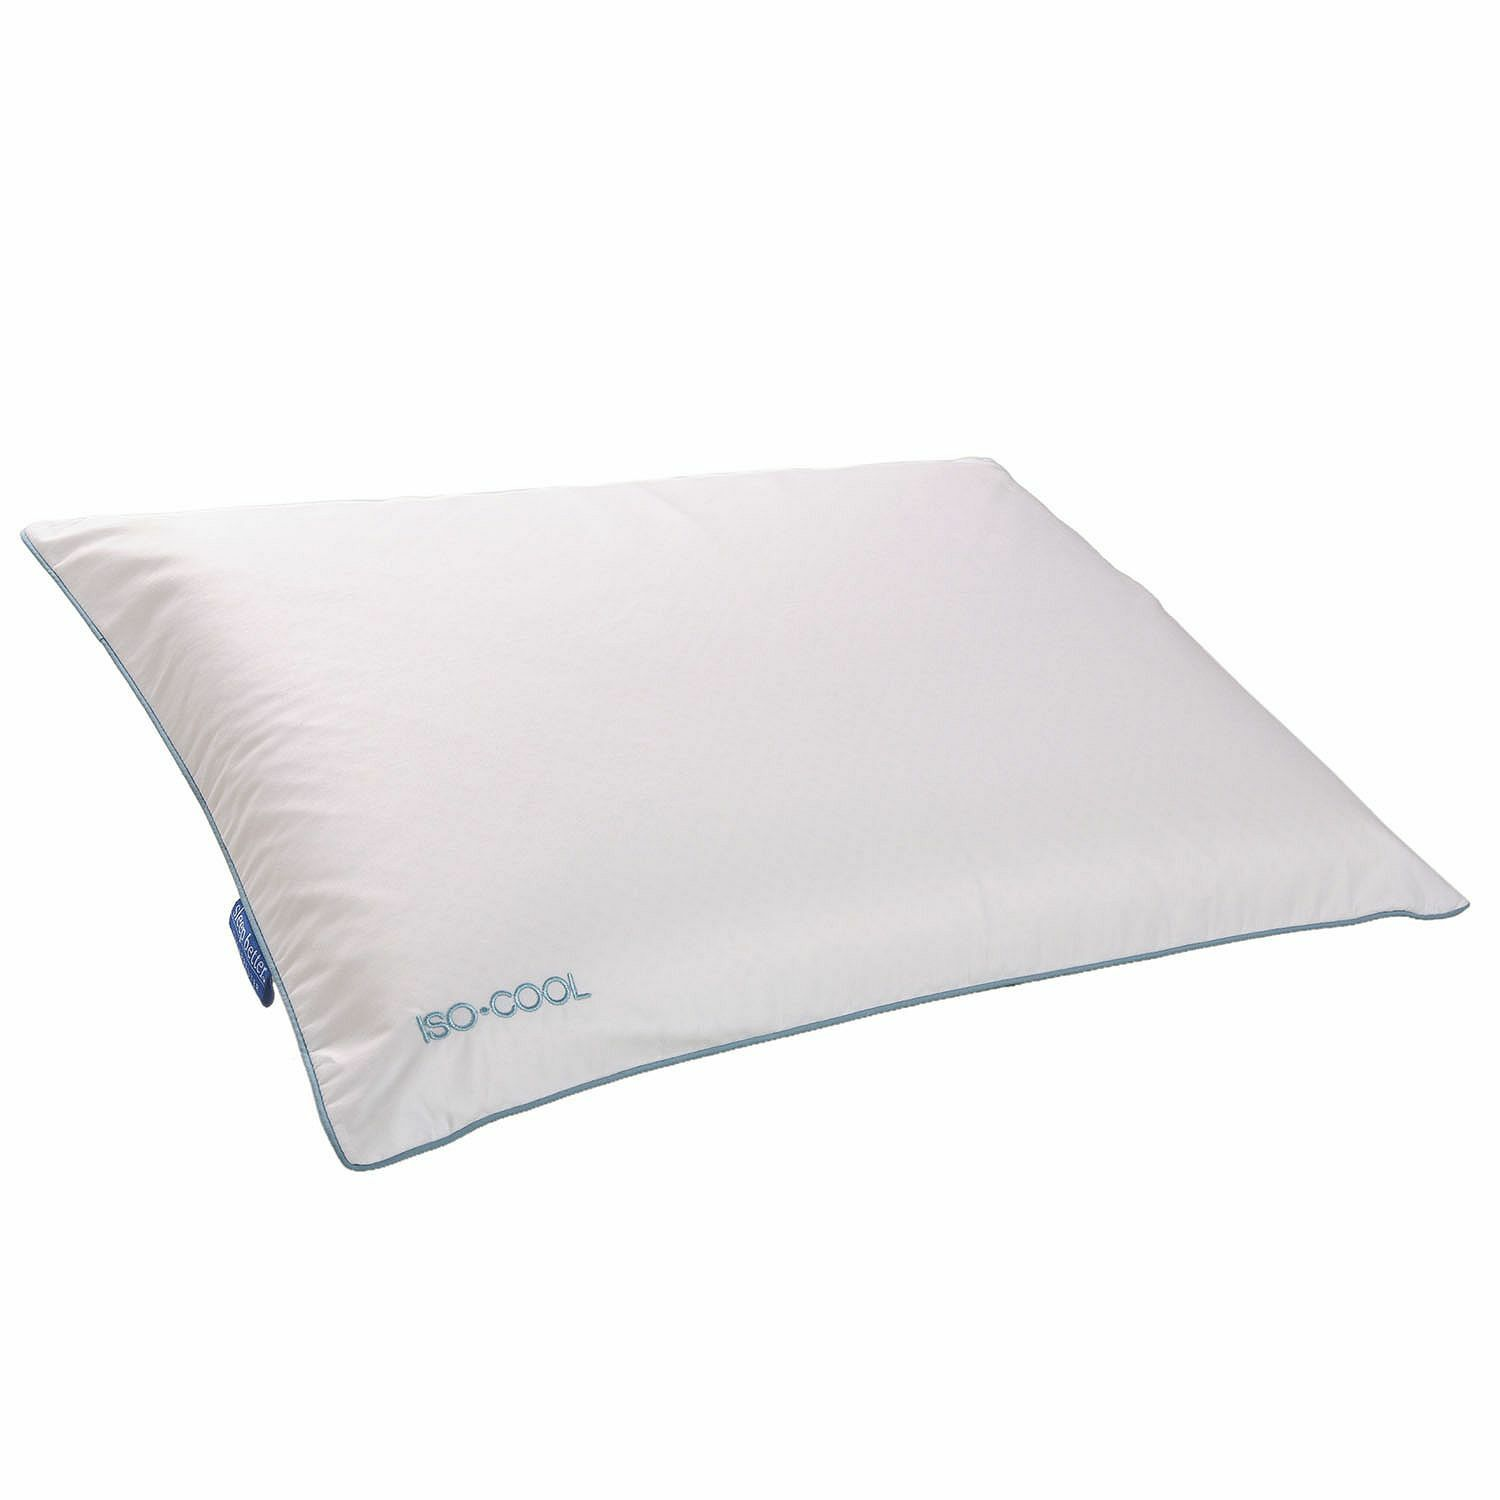 IsoCool Memory Foam Traditional Pillow